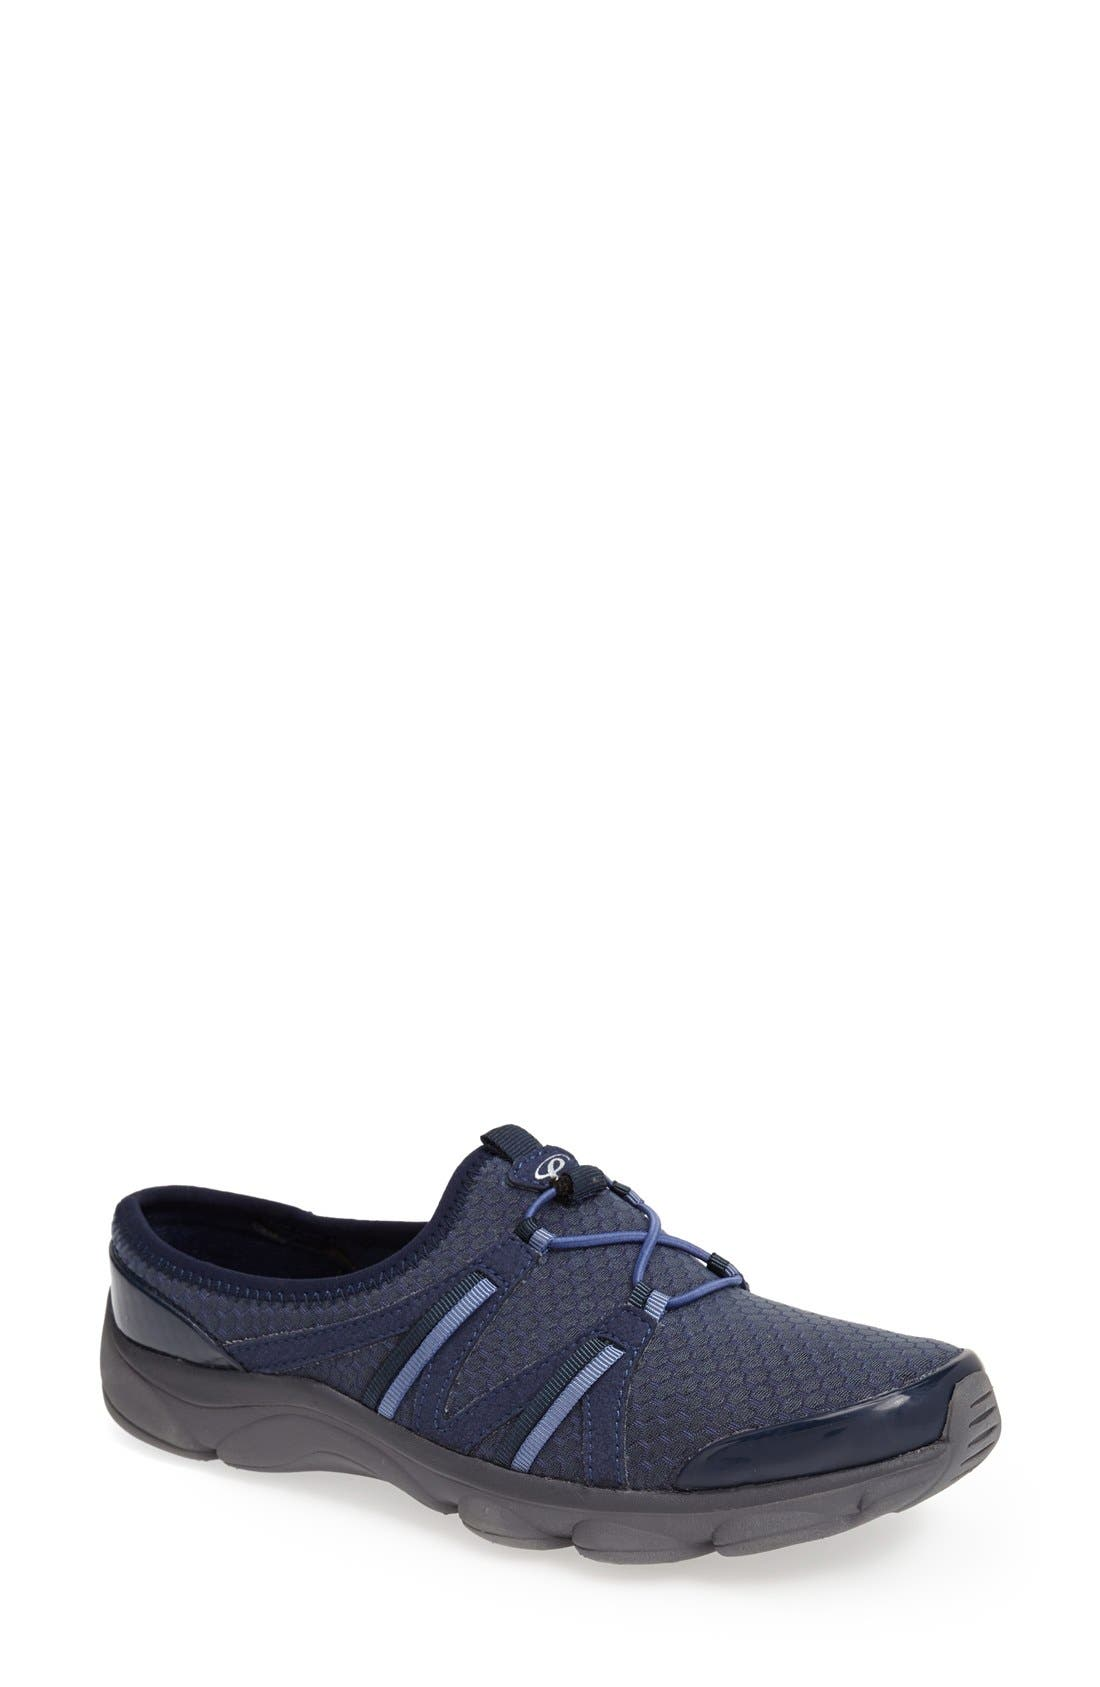 Main Image - Easy Spirit 'e360 - Rich' Slip-On Sneaker (Women)